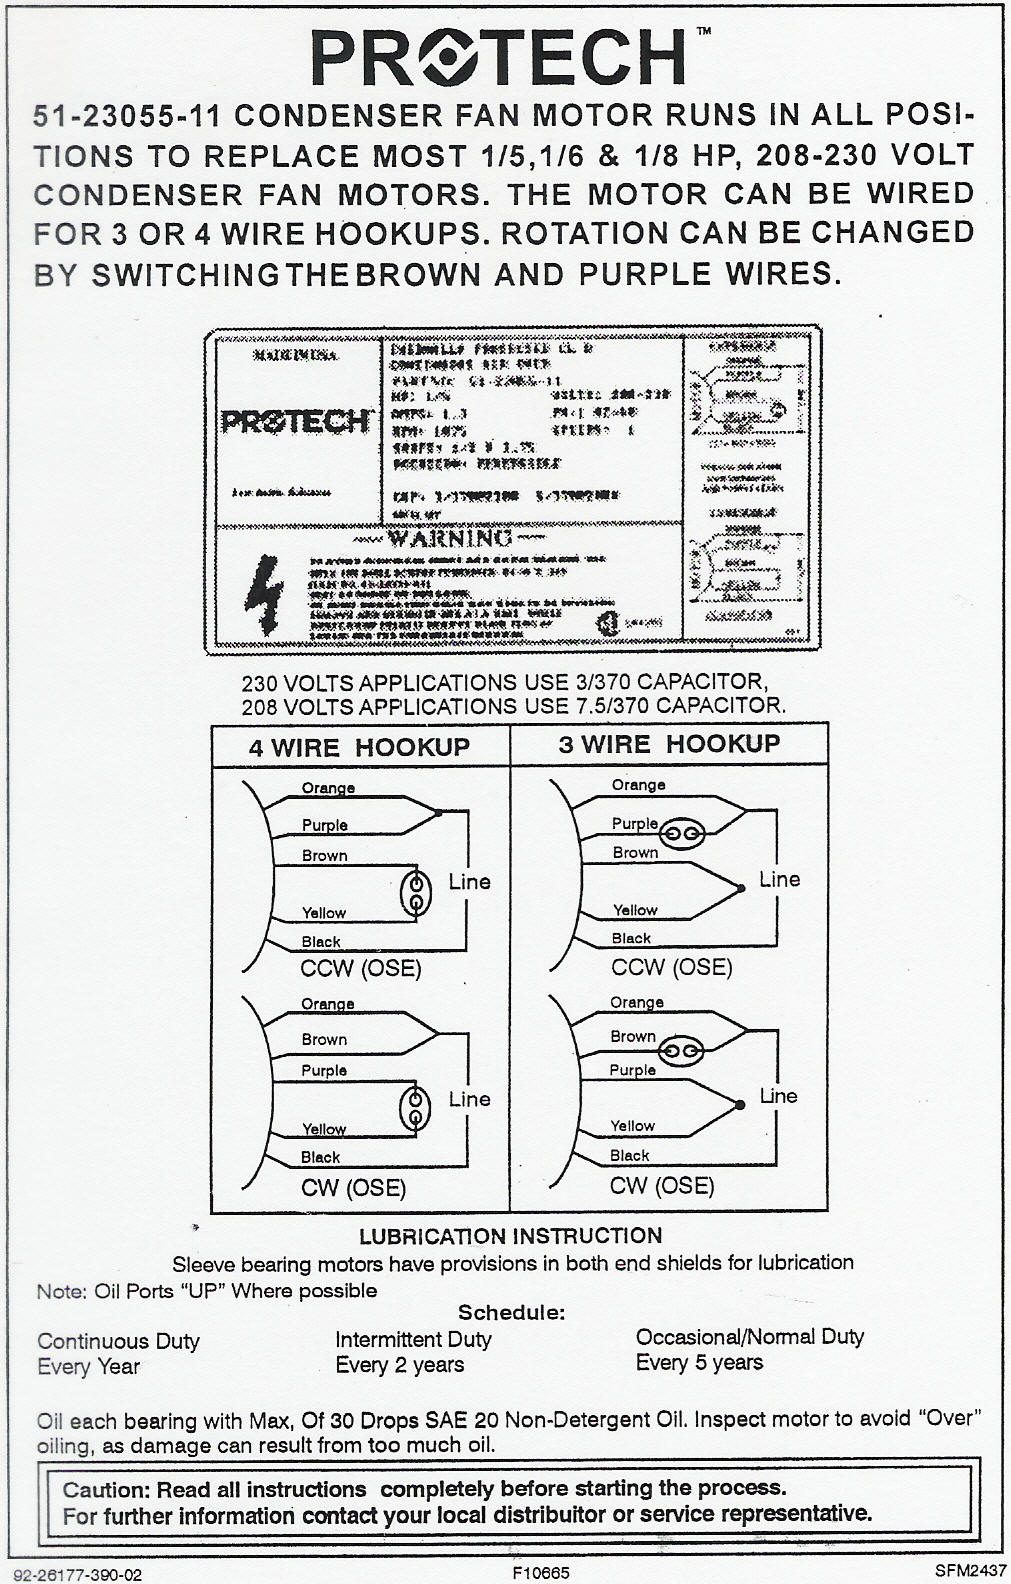 51 23055 11 wiring diagram rheem ruud condenser fan motor 51 23055 11 wiring diagram rheem ac unit wiring diagram at gsmx.co